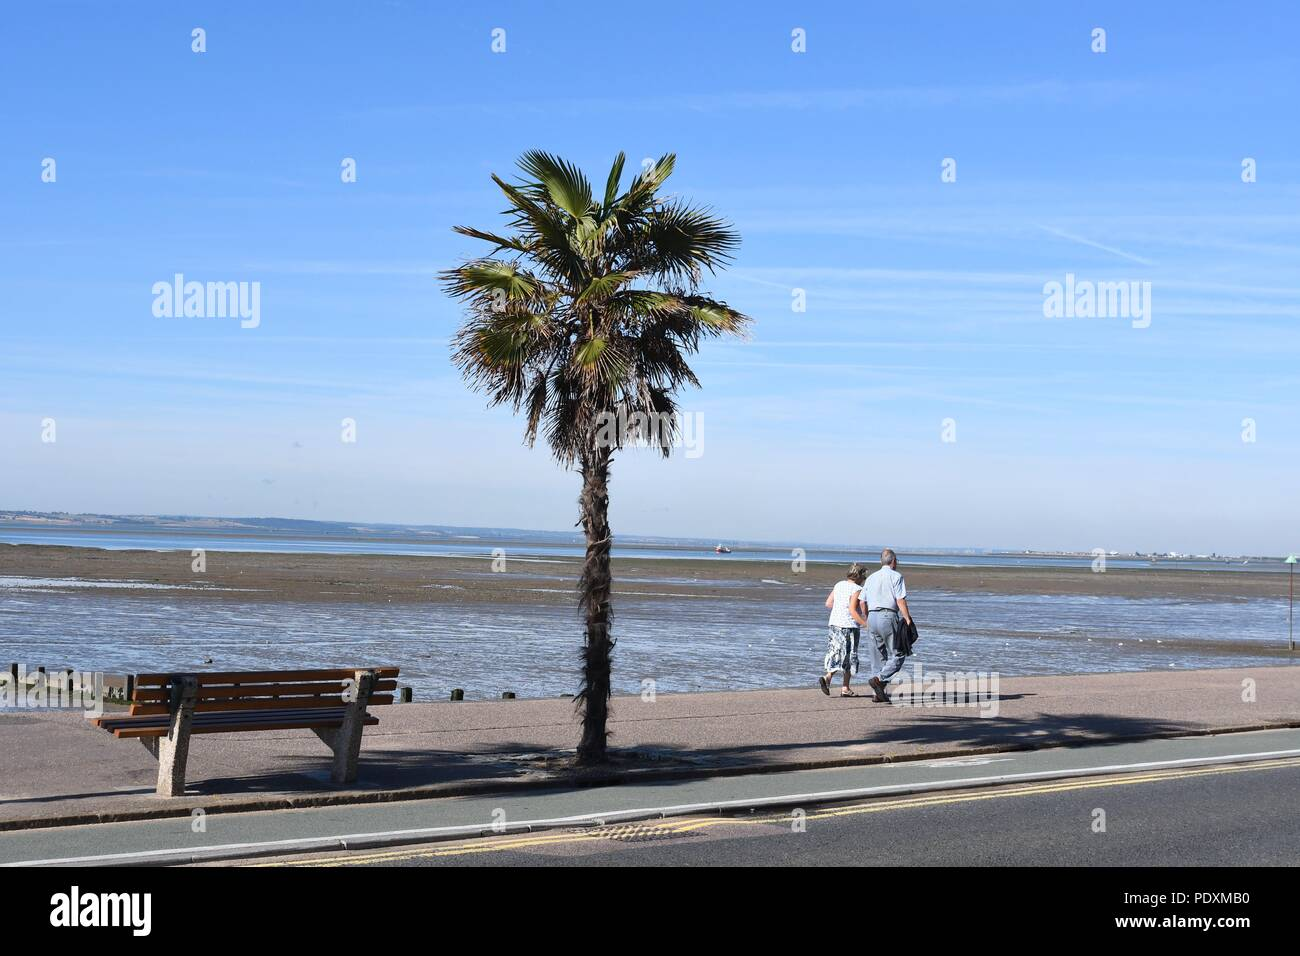 Southend-on-Sea, Essex, UK. 11th August, 2018. UK Weather: A warm start to the day in Southend - a view of people walking along the sea front Credit: Ben Rector/Alamy Live News - Stock Image